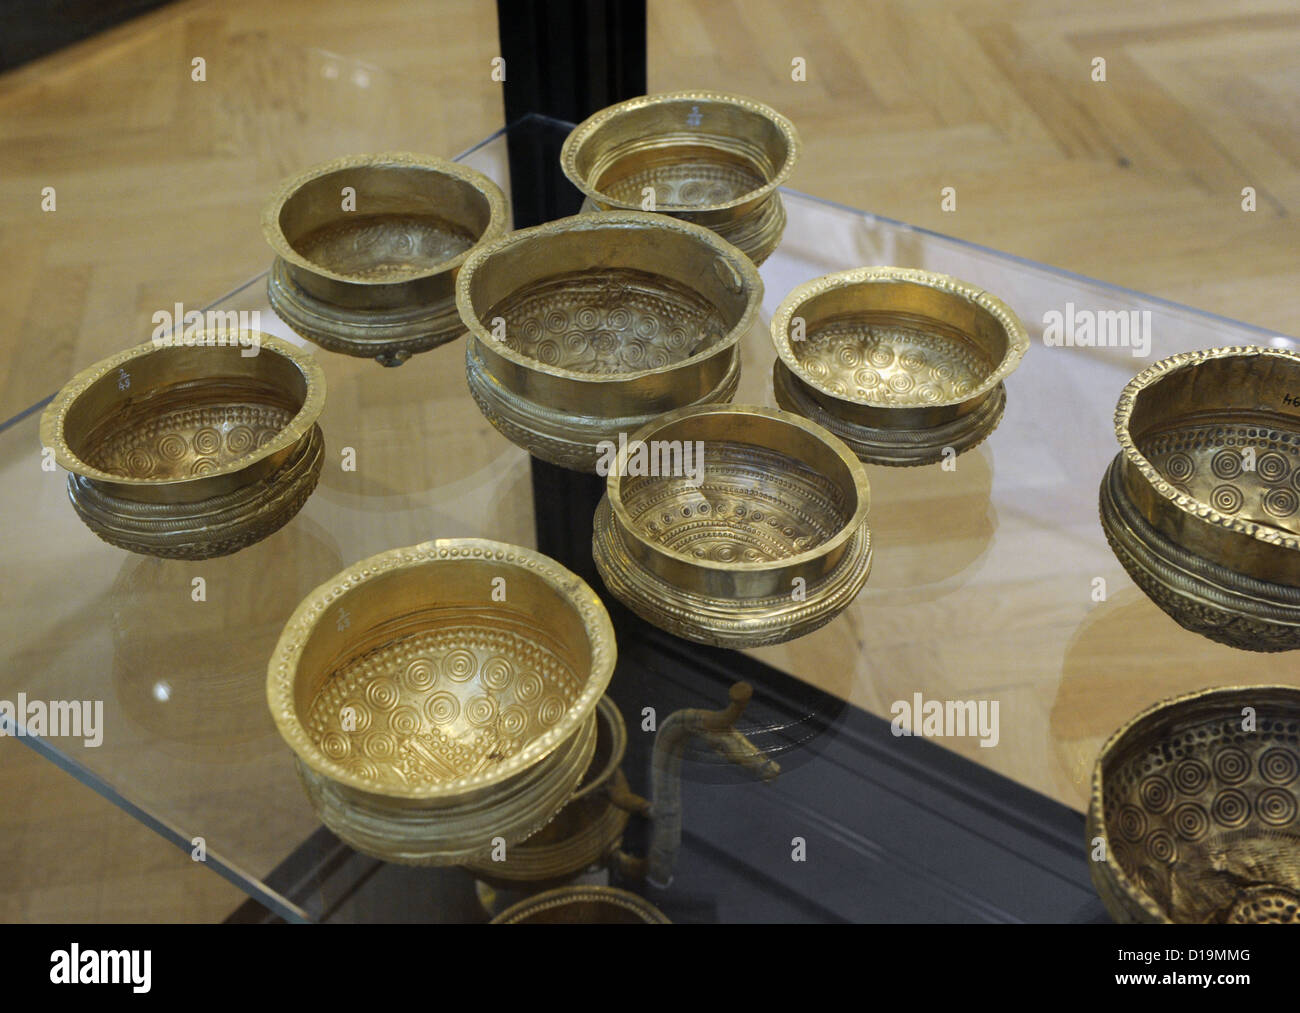 Prehistory. Metal Age. Northern Europe. Golden vessels. Decorated with geometric patterns. The Late Bronze Age. - Stock Image